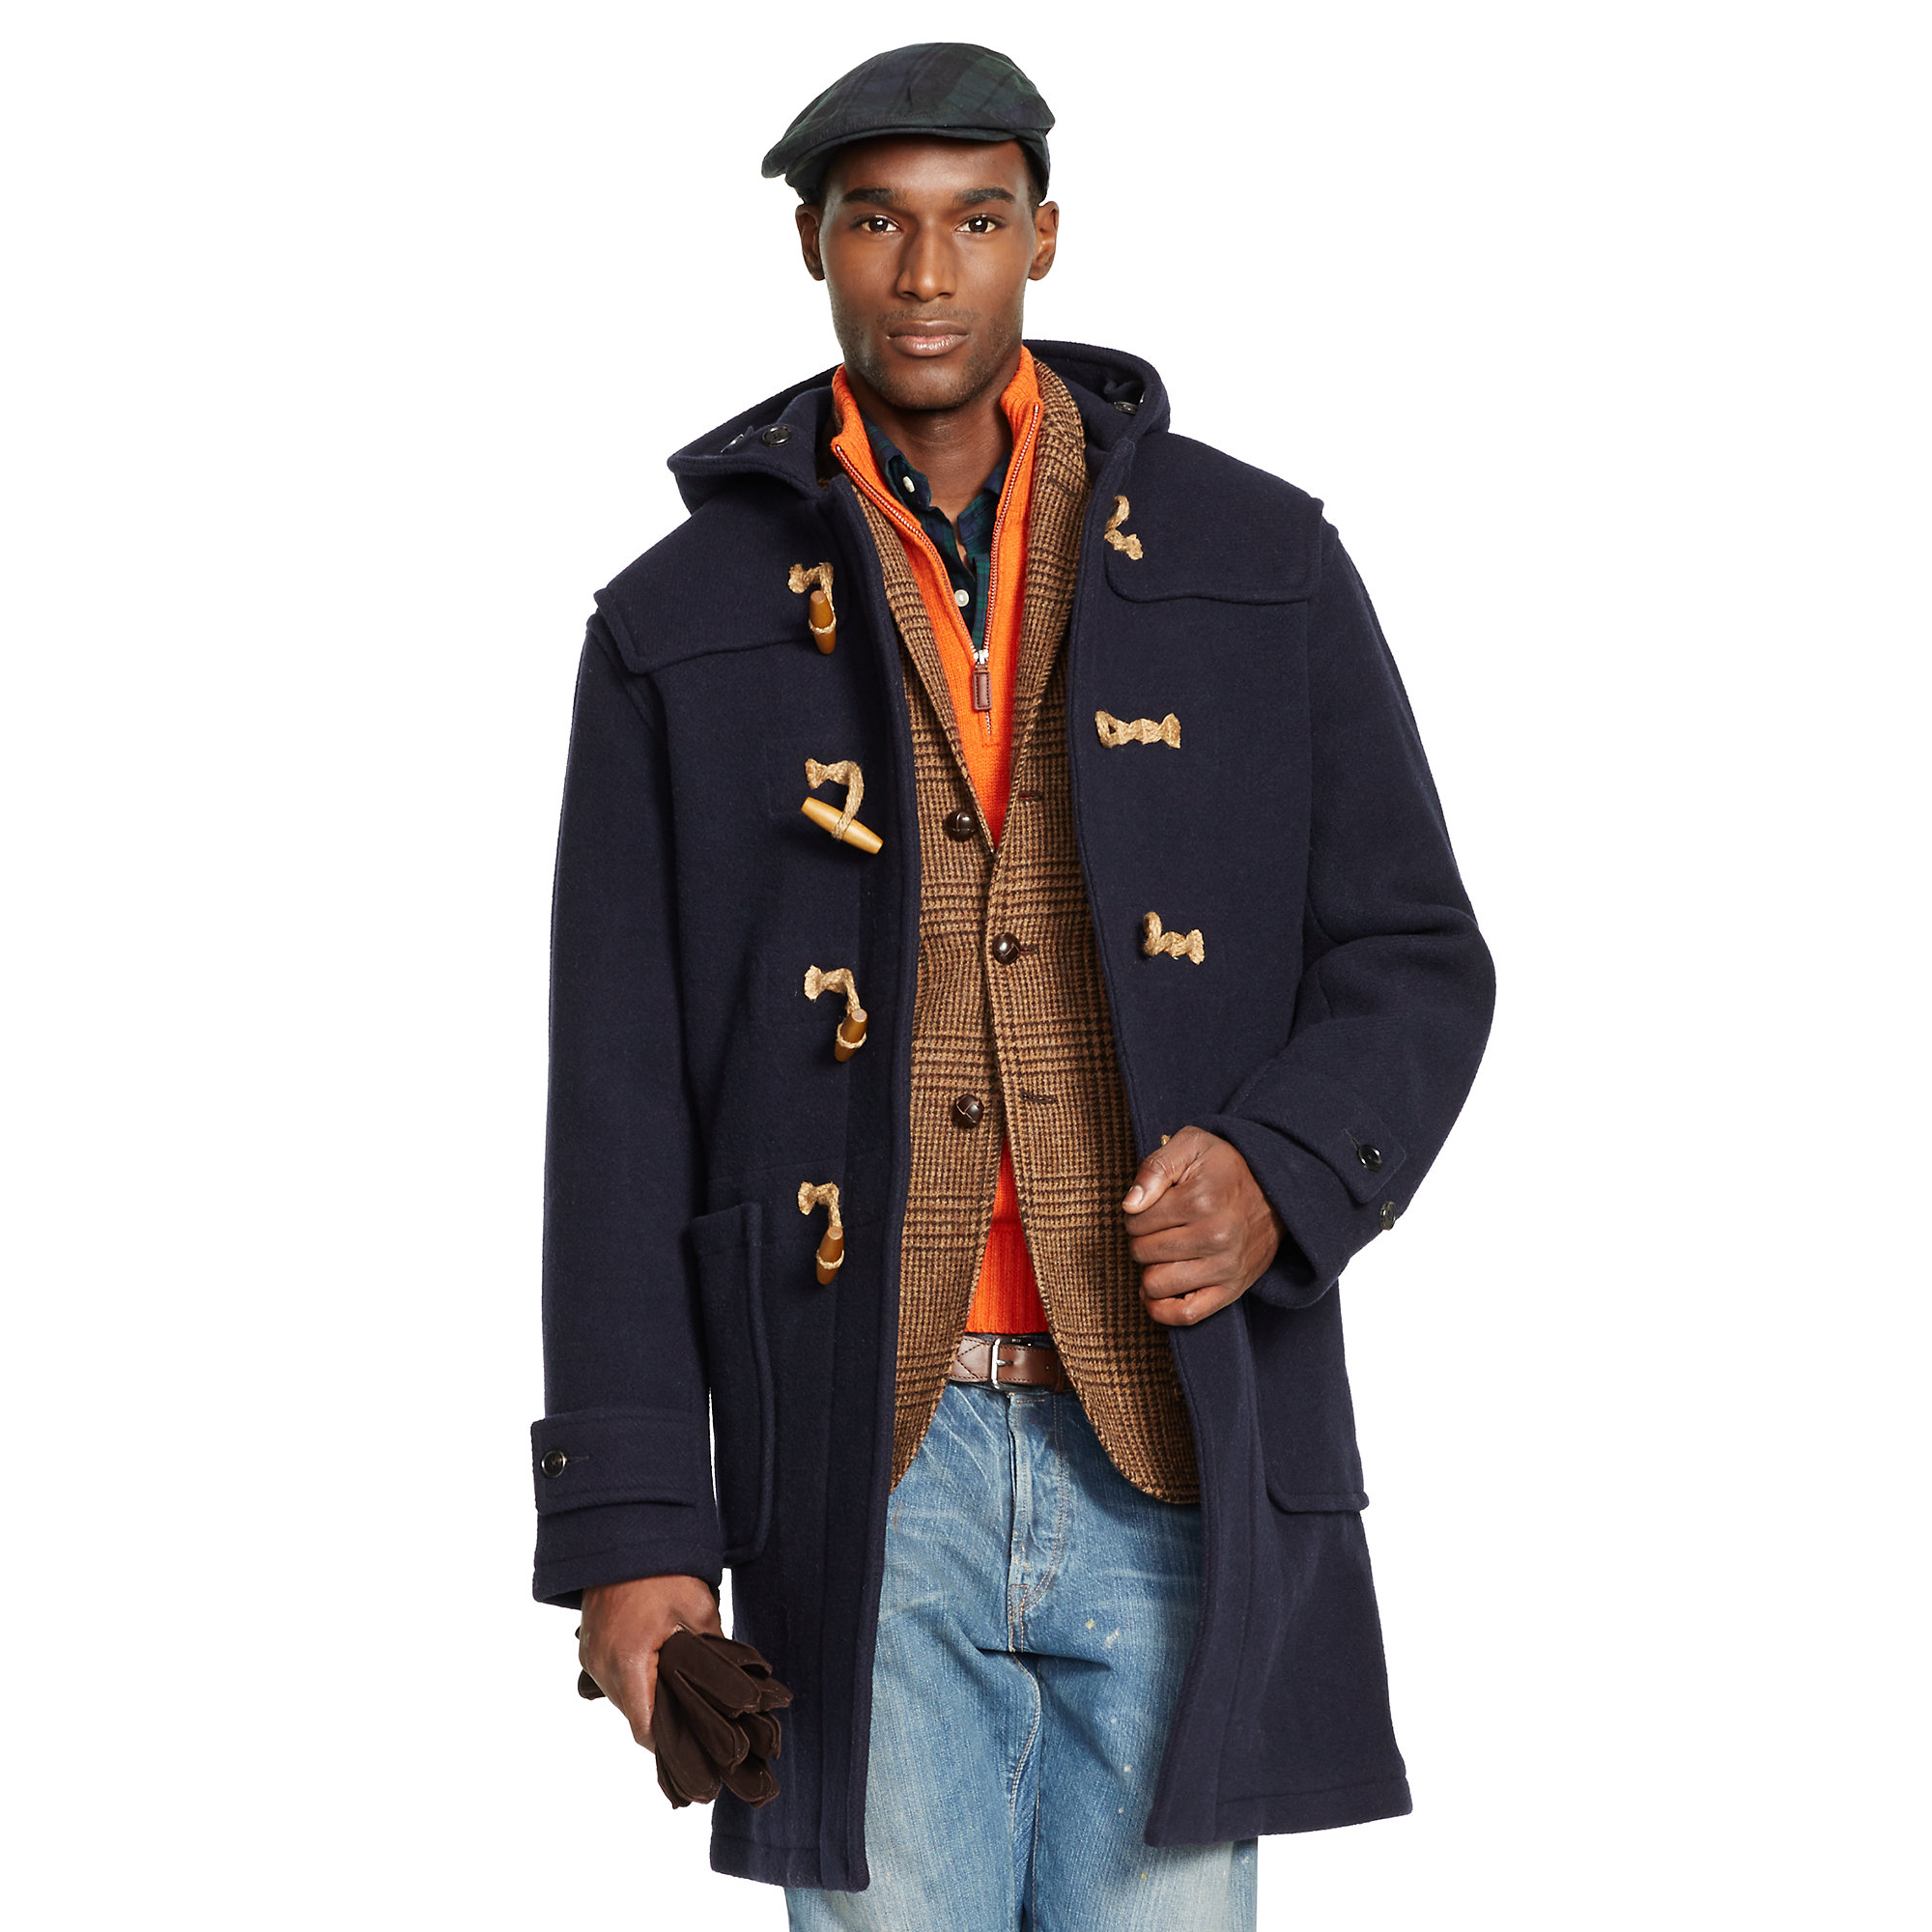 Lyst Polo Ralph Lauren Hooded Wool Toggle Coat In Blue Interiors Inside Ideas Interiors design about Everything [magnanprojects.com]